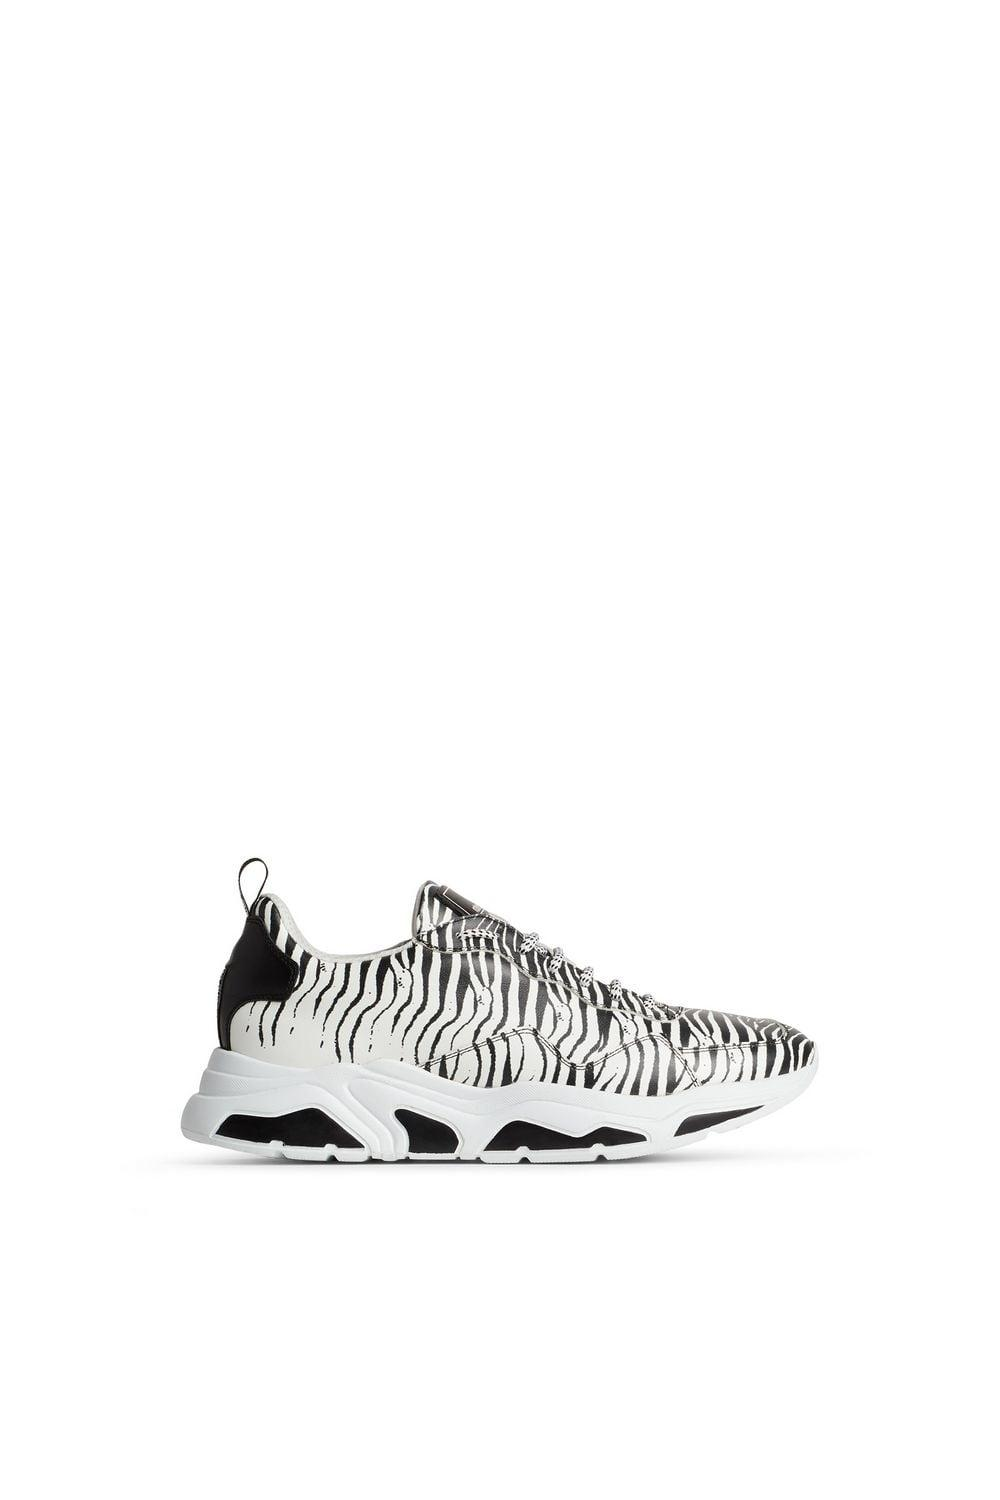 19fd5bc793bb Lyst - Roberto Cavalli Zebra Print Lace Up Sneakers in White for Men